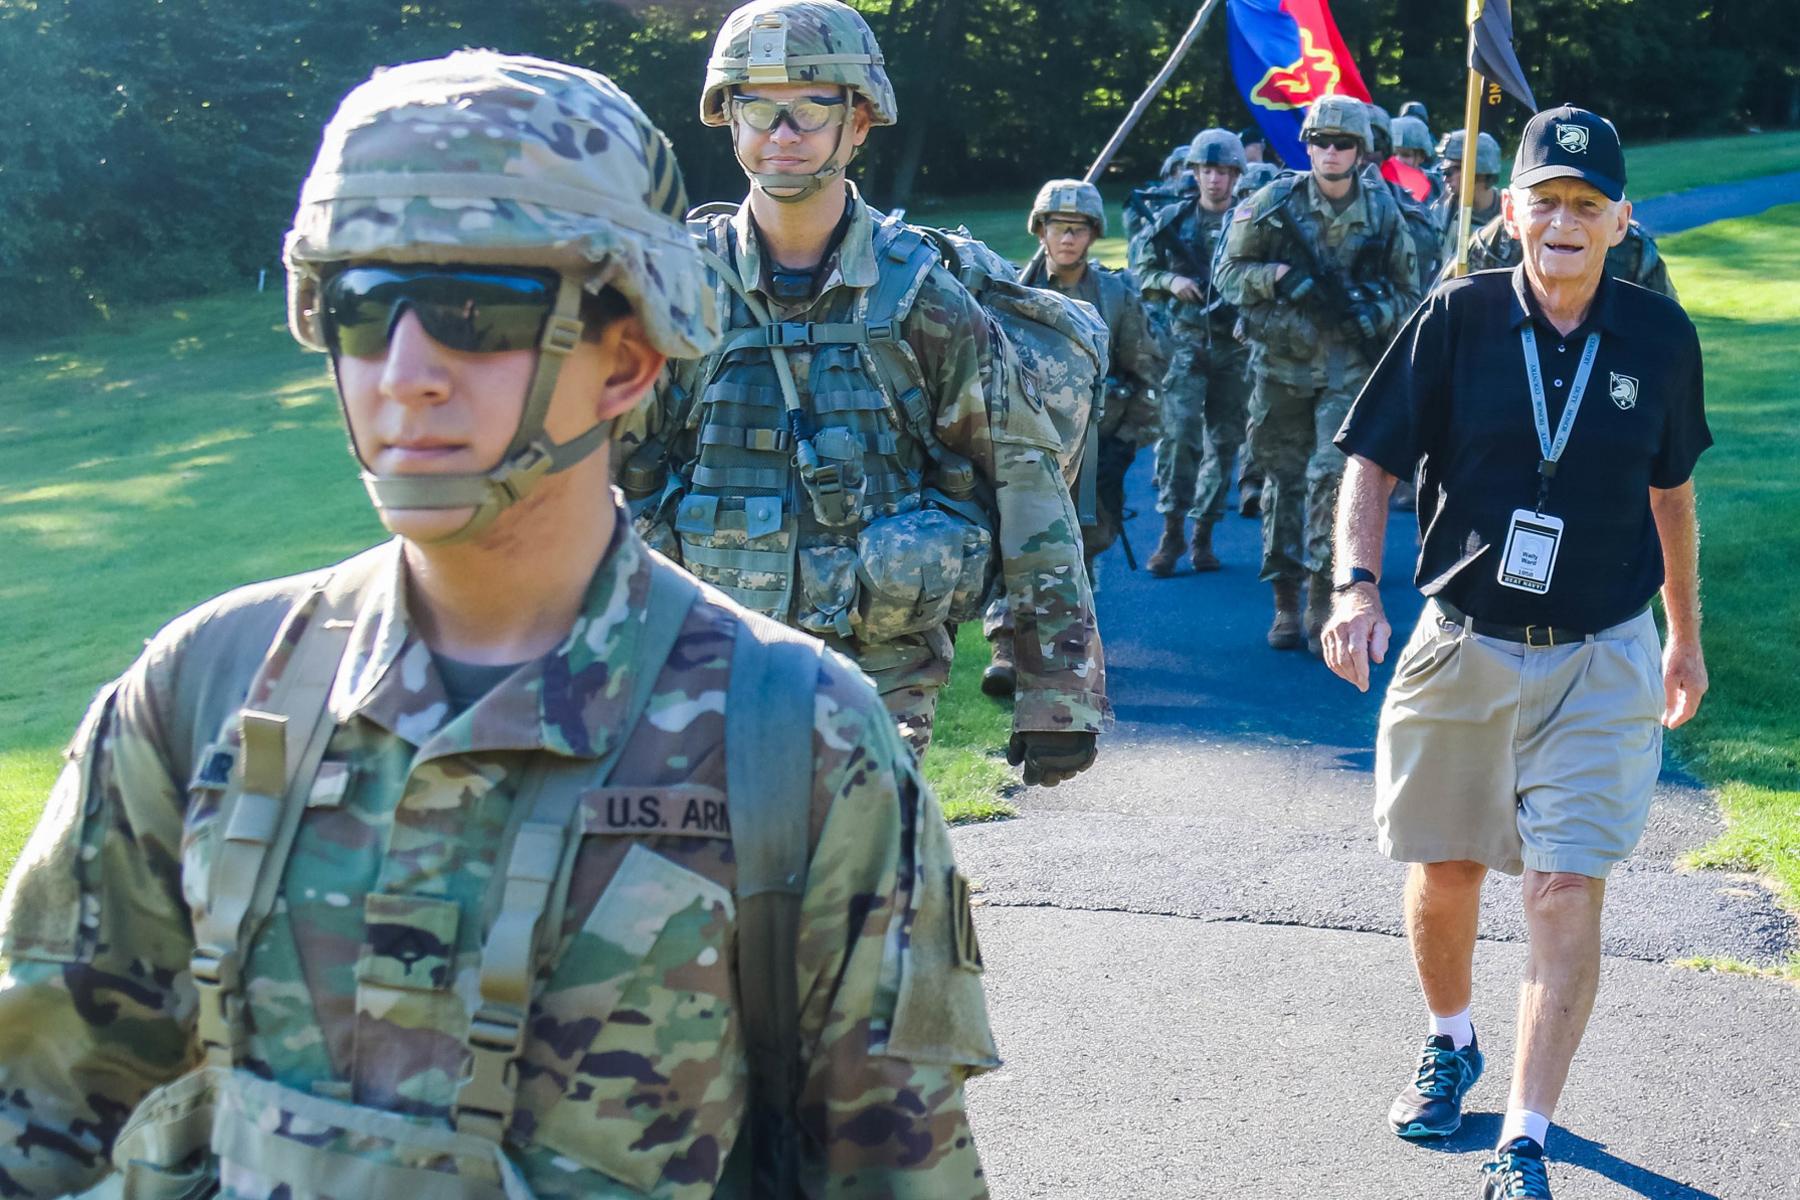 87-Year-Old West Point Grad Still Enjoys Marching with New Cadets